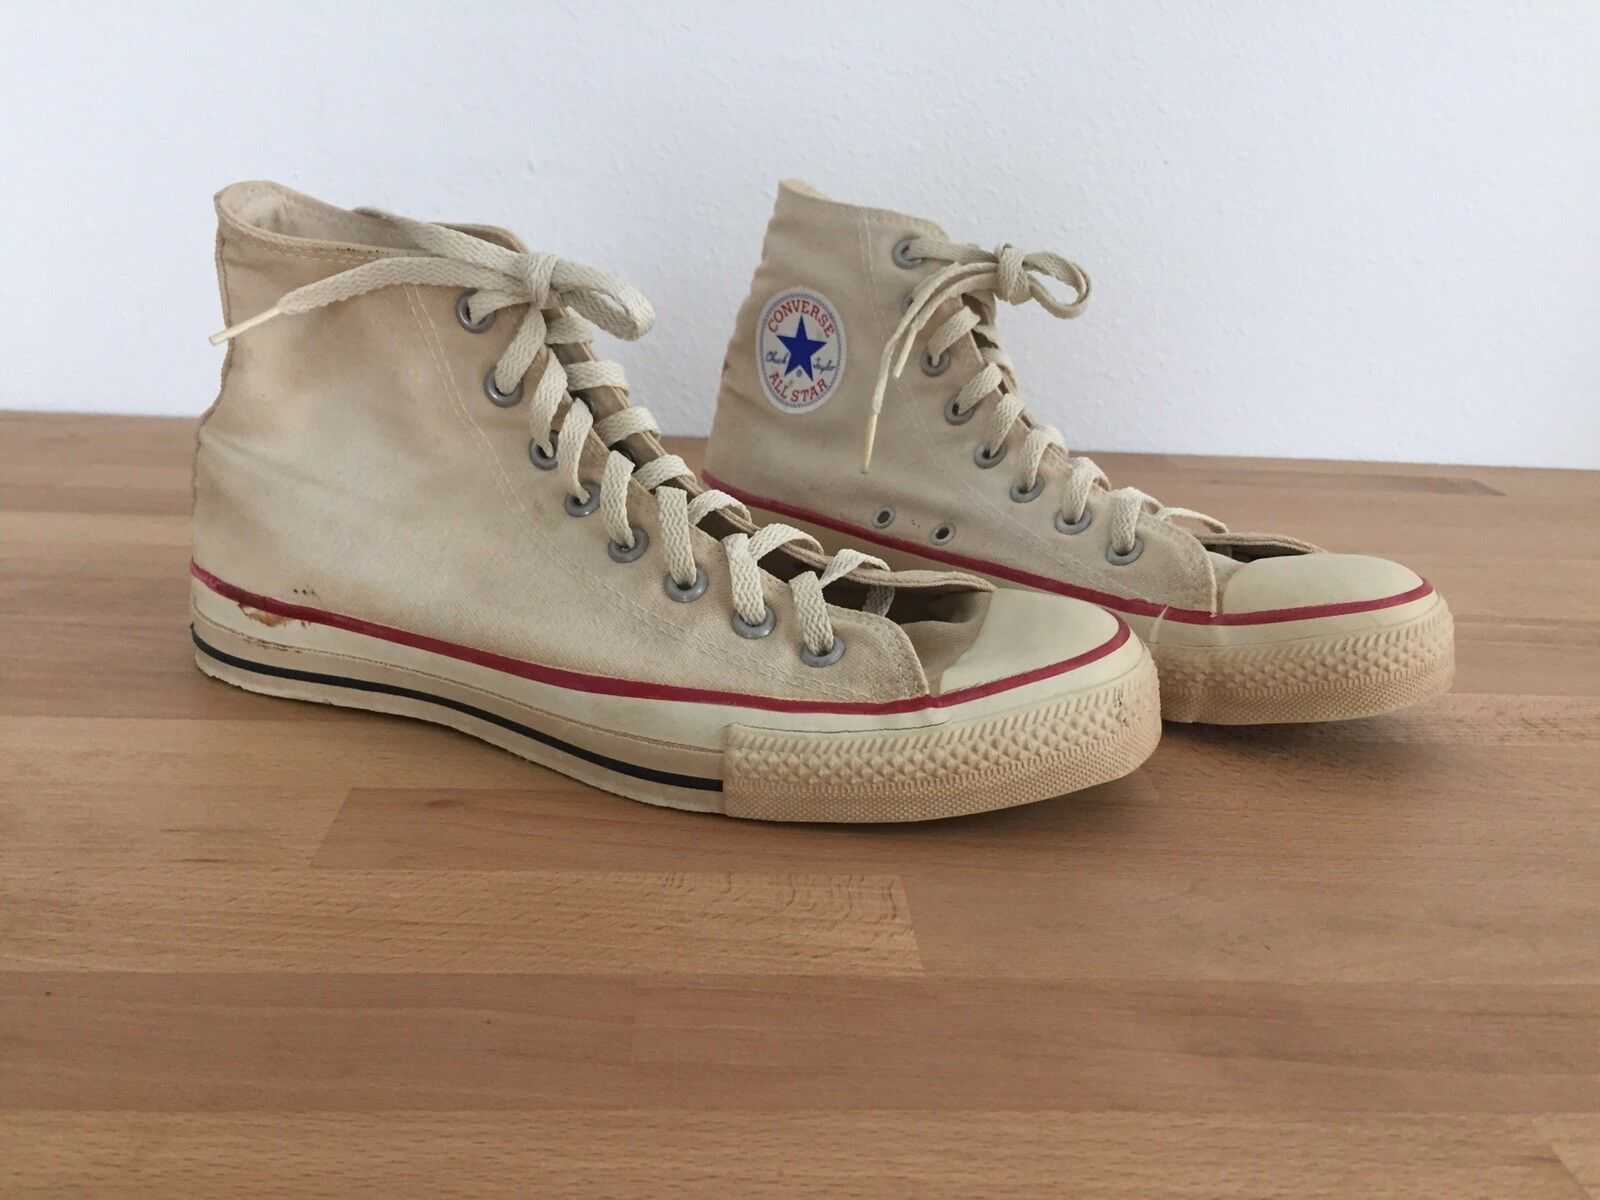 Barely used Vintage 80s 90s Converse Chuck Taylor All Star Made in USA.